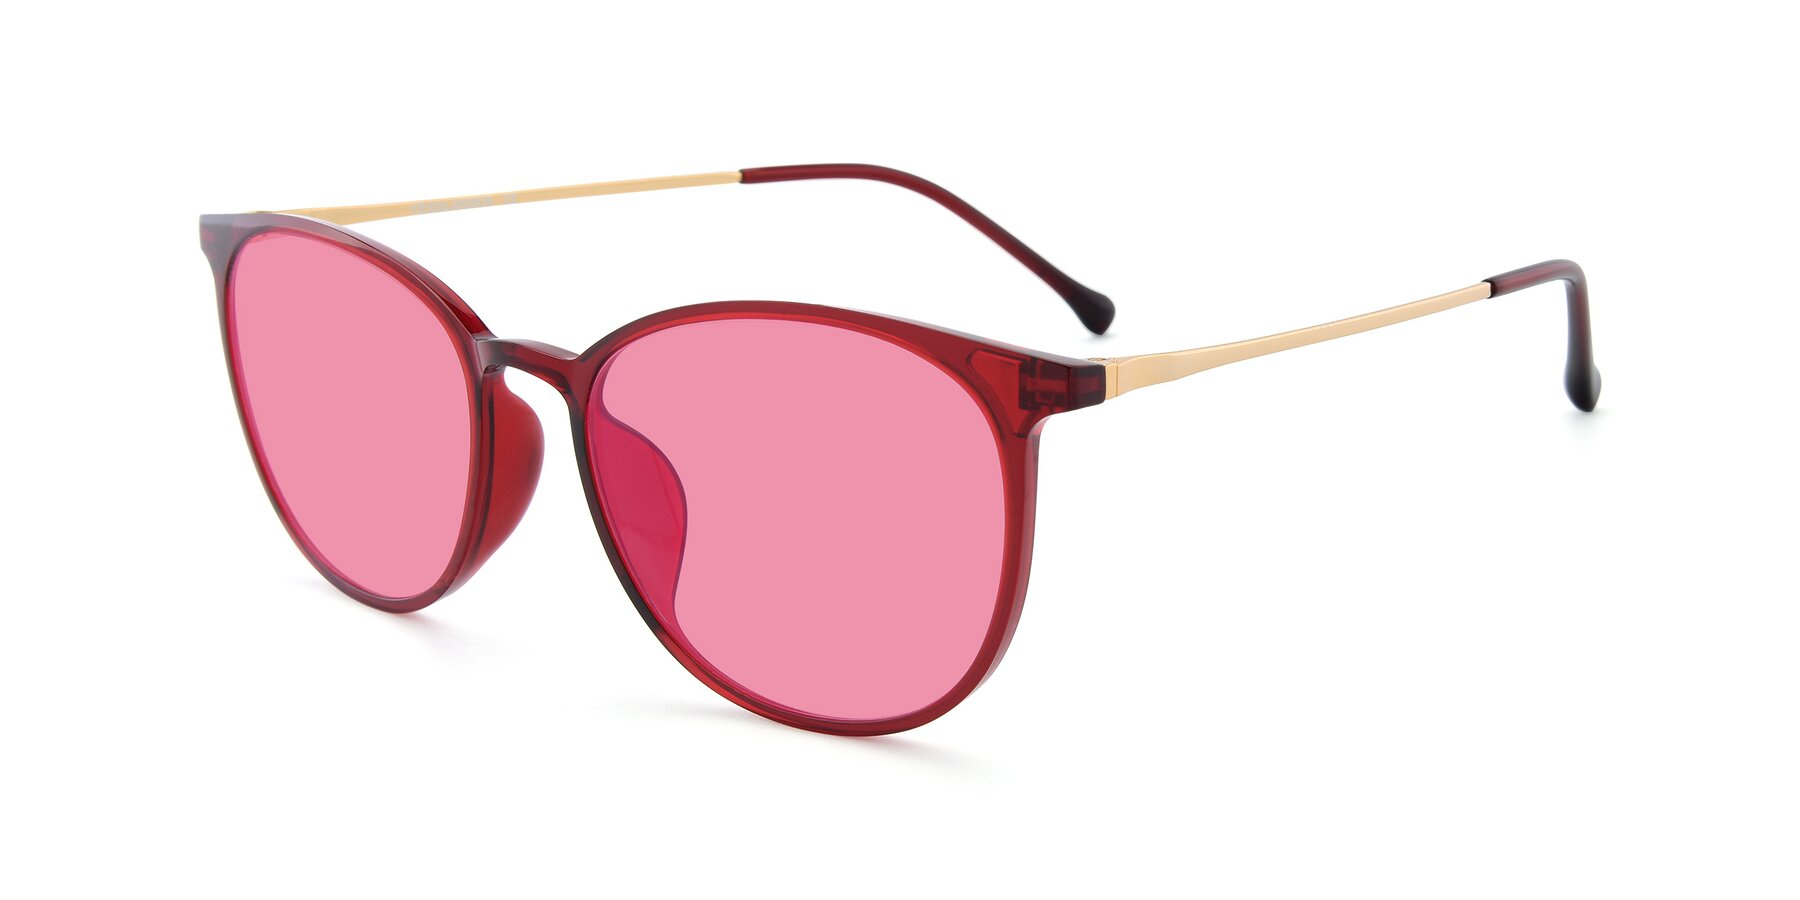 Angle of XC-6006 in Wine-Gold with Pink Tinted Lenses